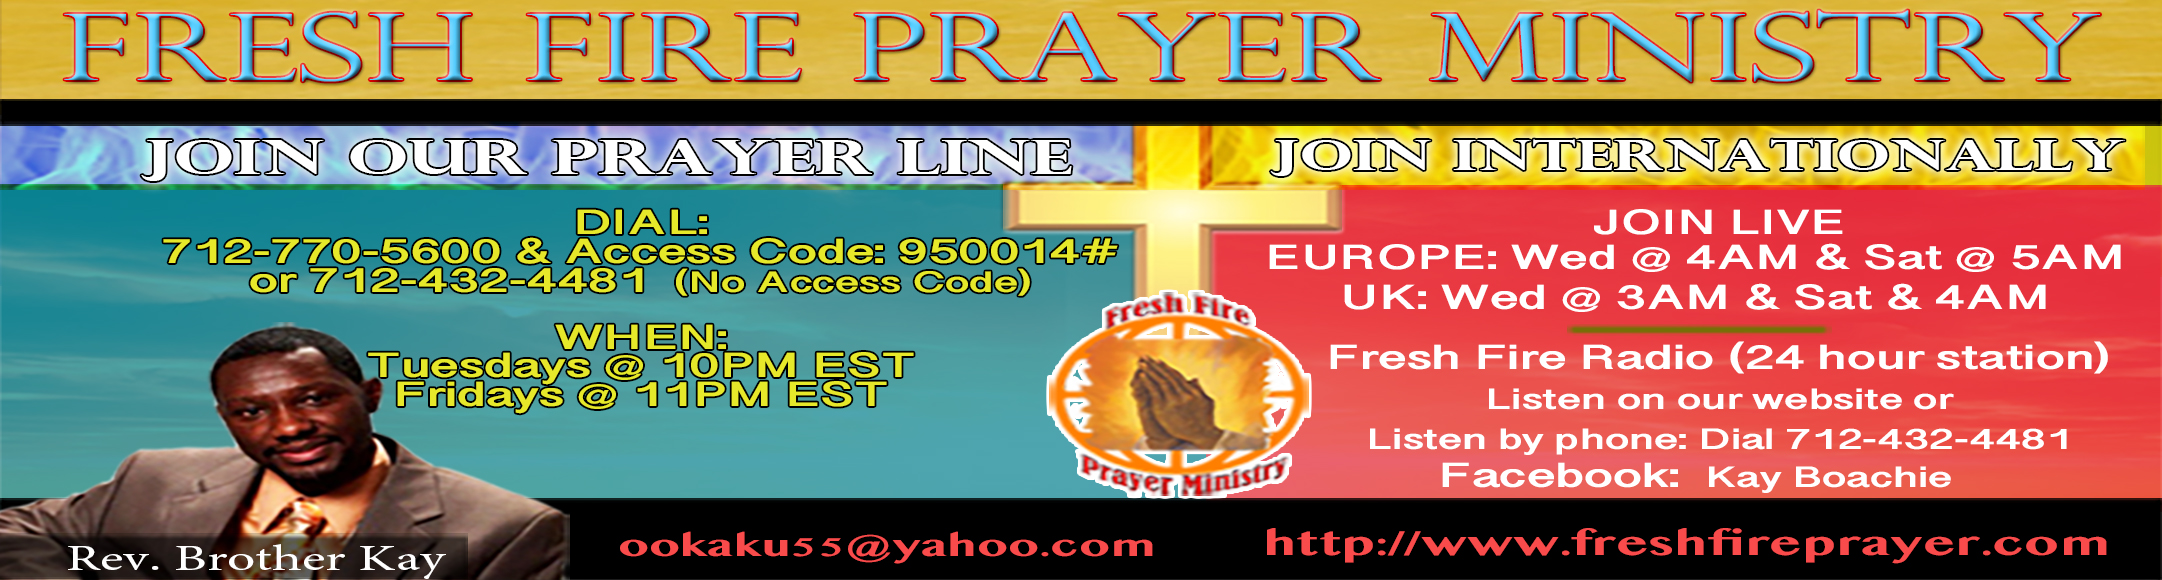 Home- Fresh Fire Prayer Ministry